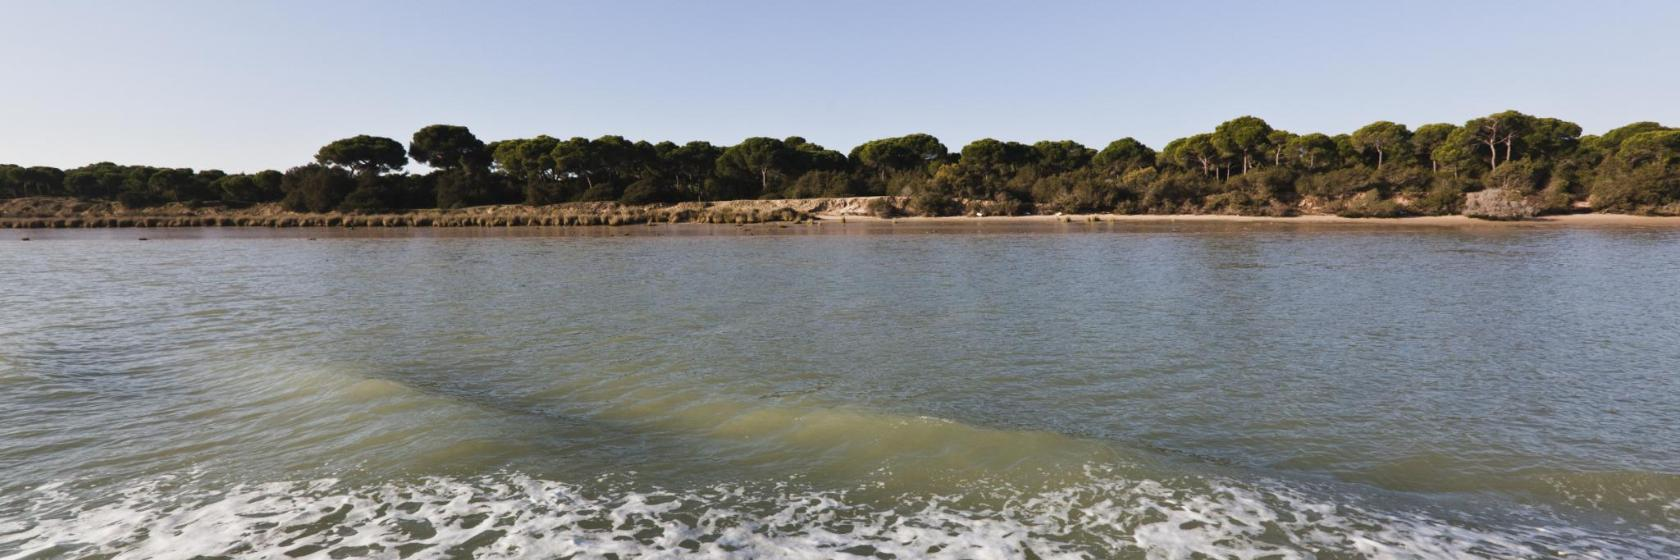 The 10 Best Donana National Park Hotels Where To Stay In Donana National Park Spain